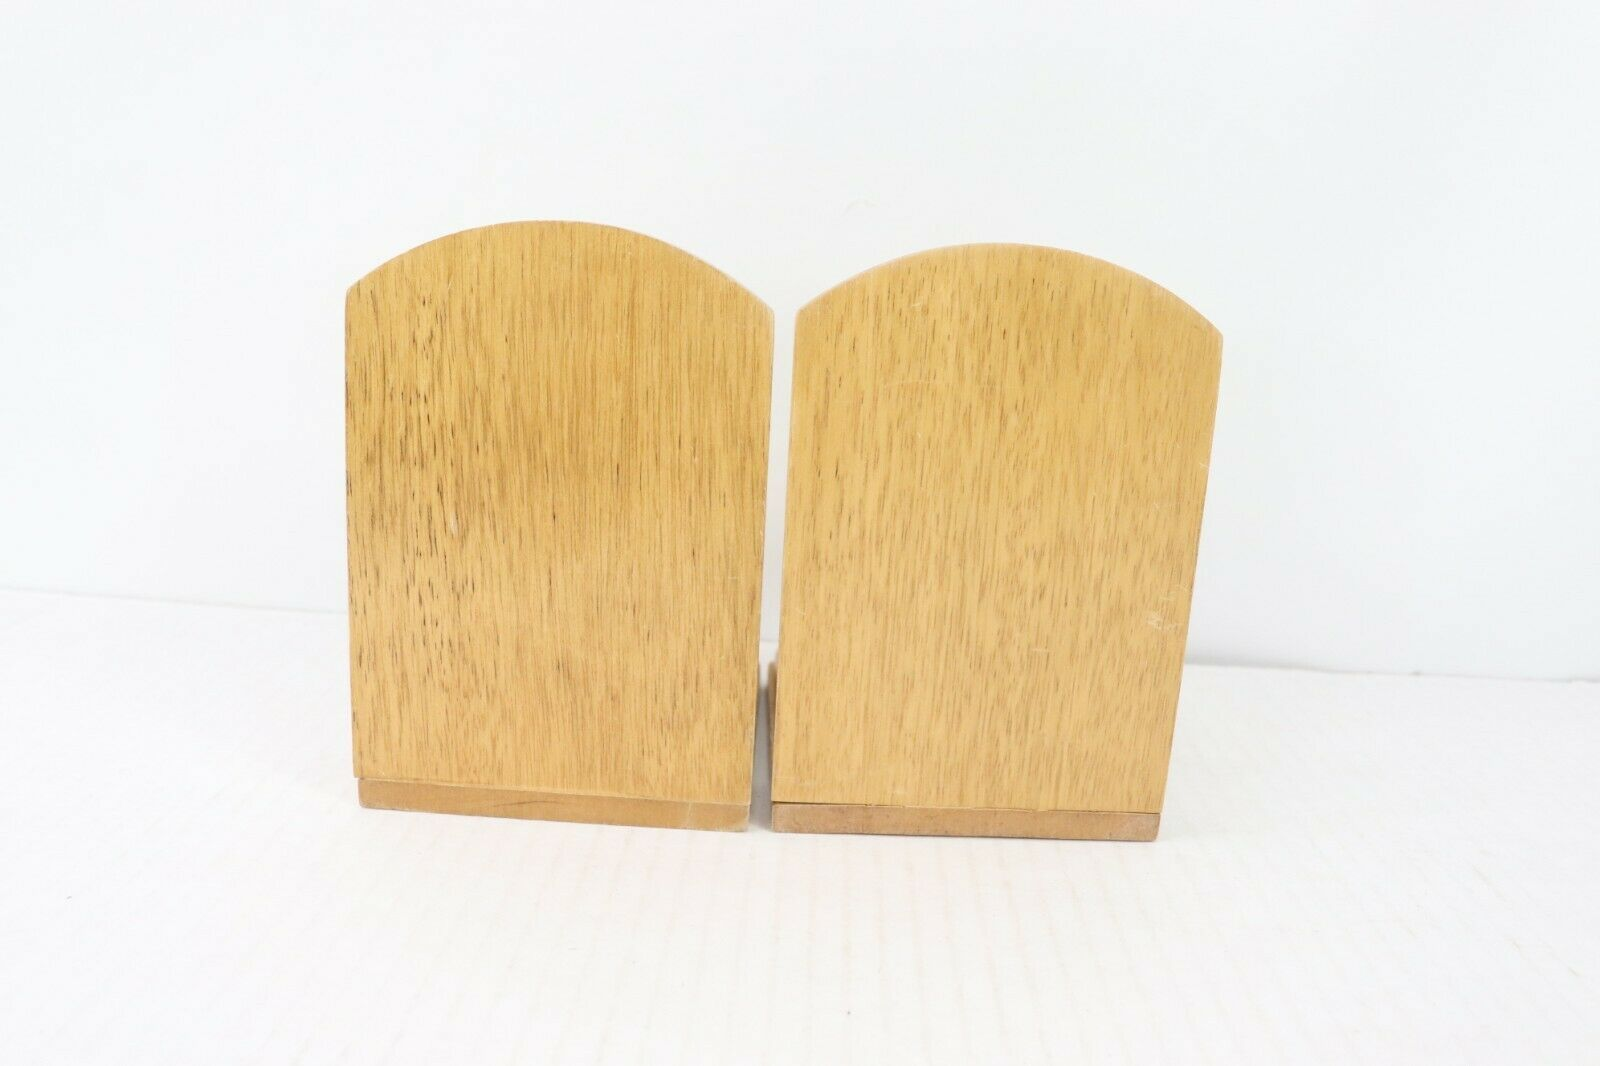 Vintage 60s Mid Century Modern MCM Brass Wood Quail Bird Bookends Book Ends